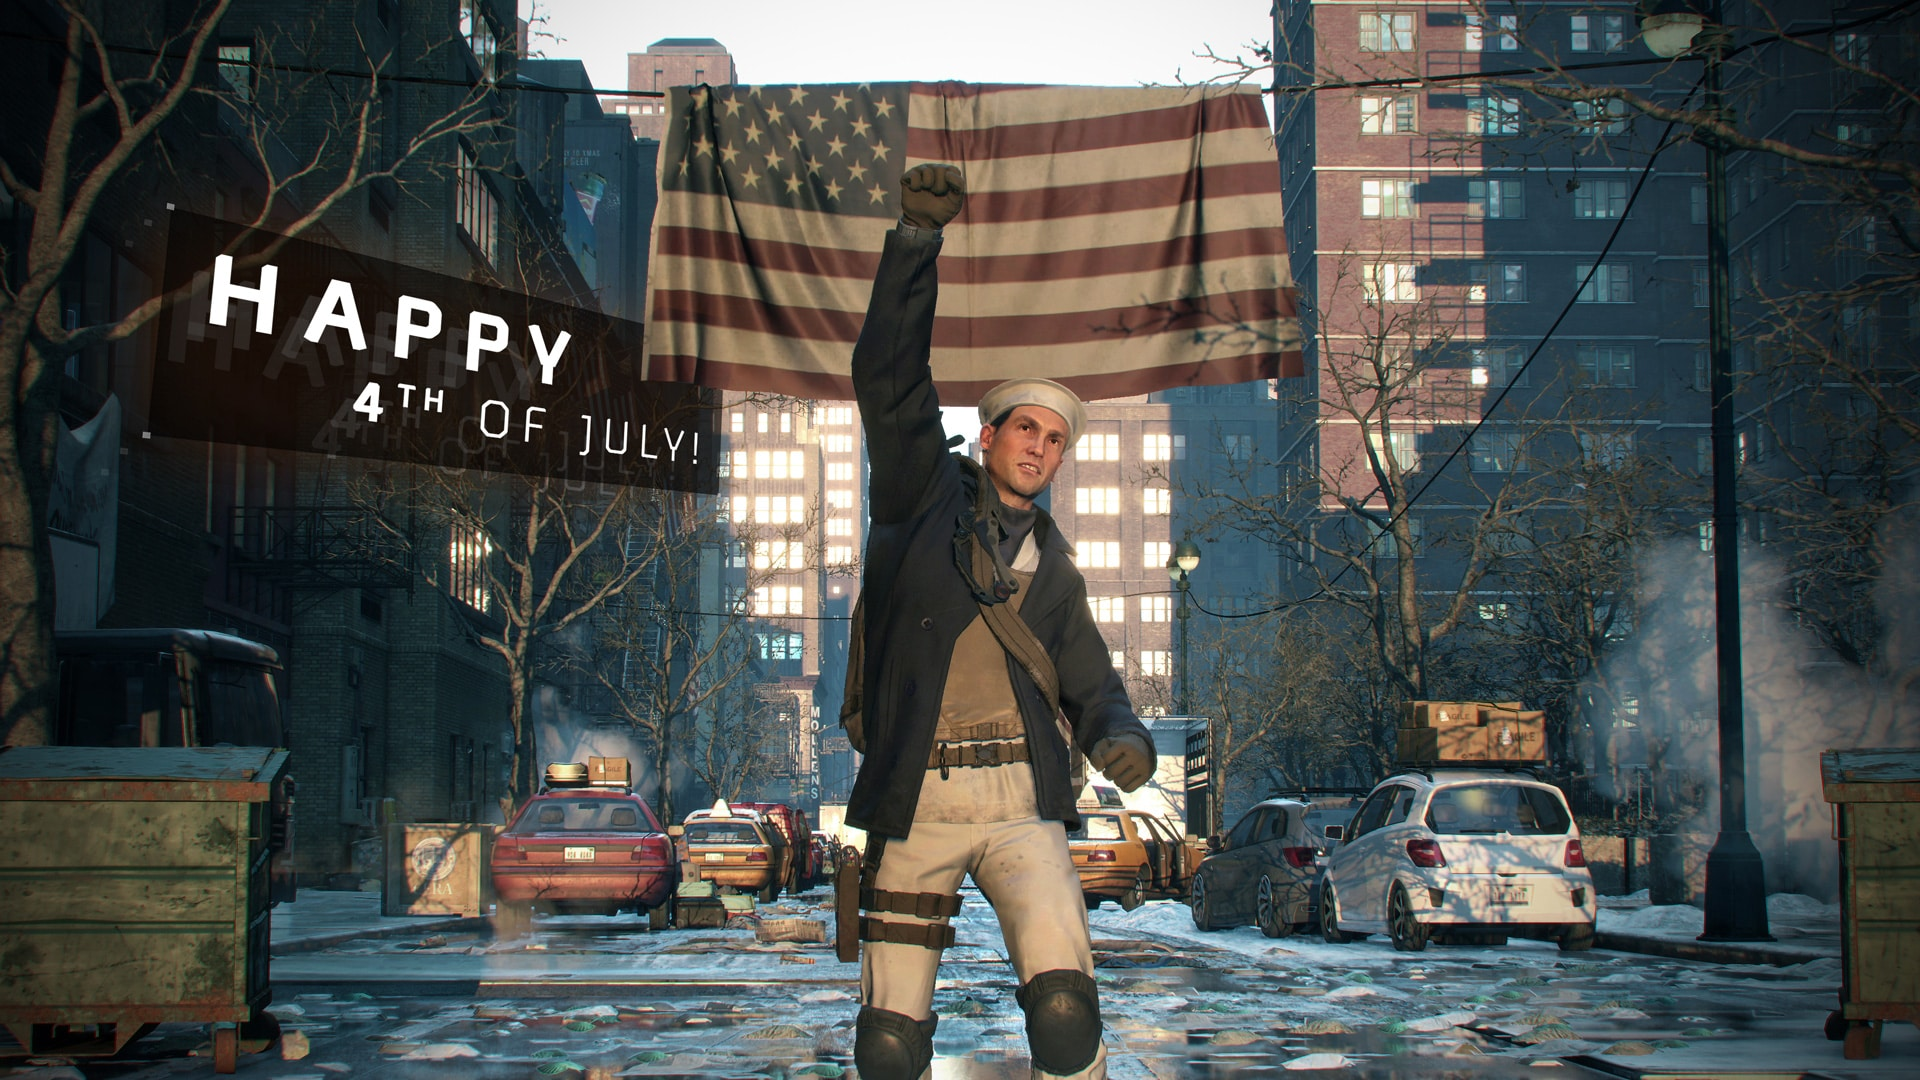 4th_July_Header